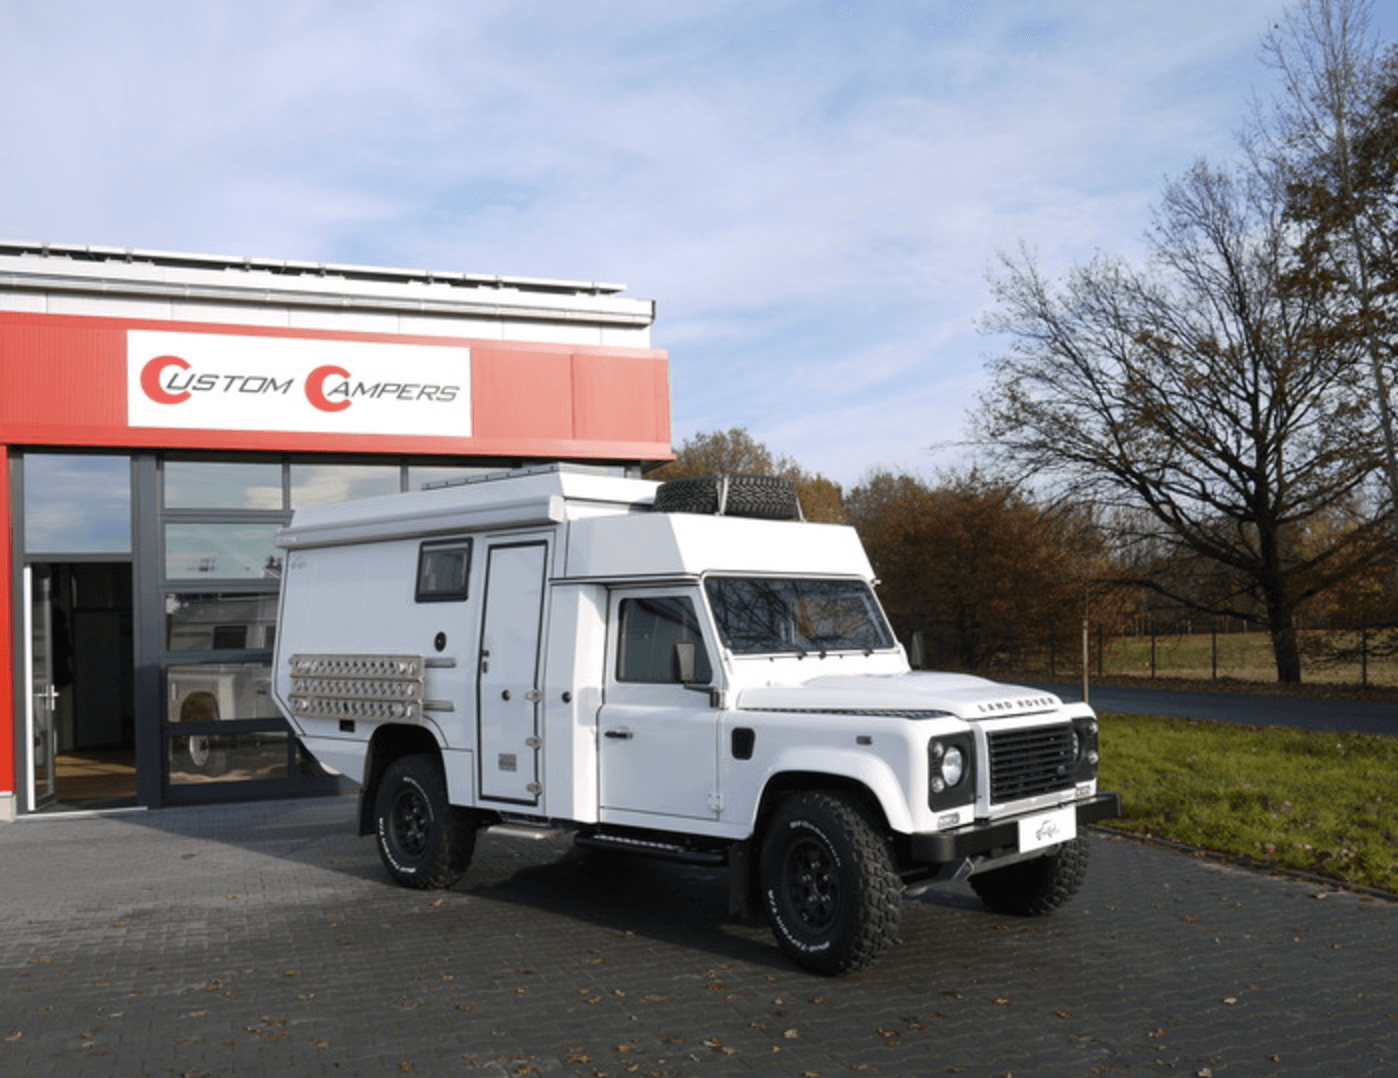 Land Rover Defender 2015 Customer Camper White Expedition Vehicles For Sale